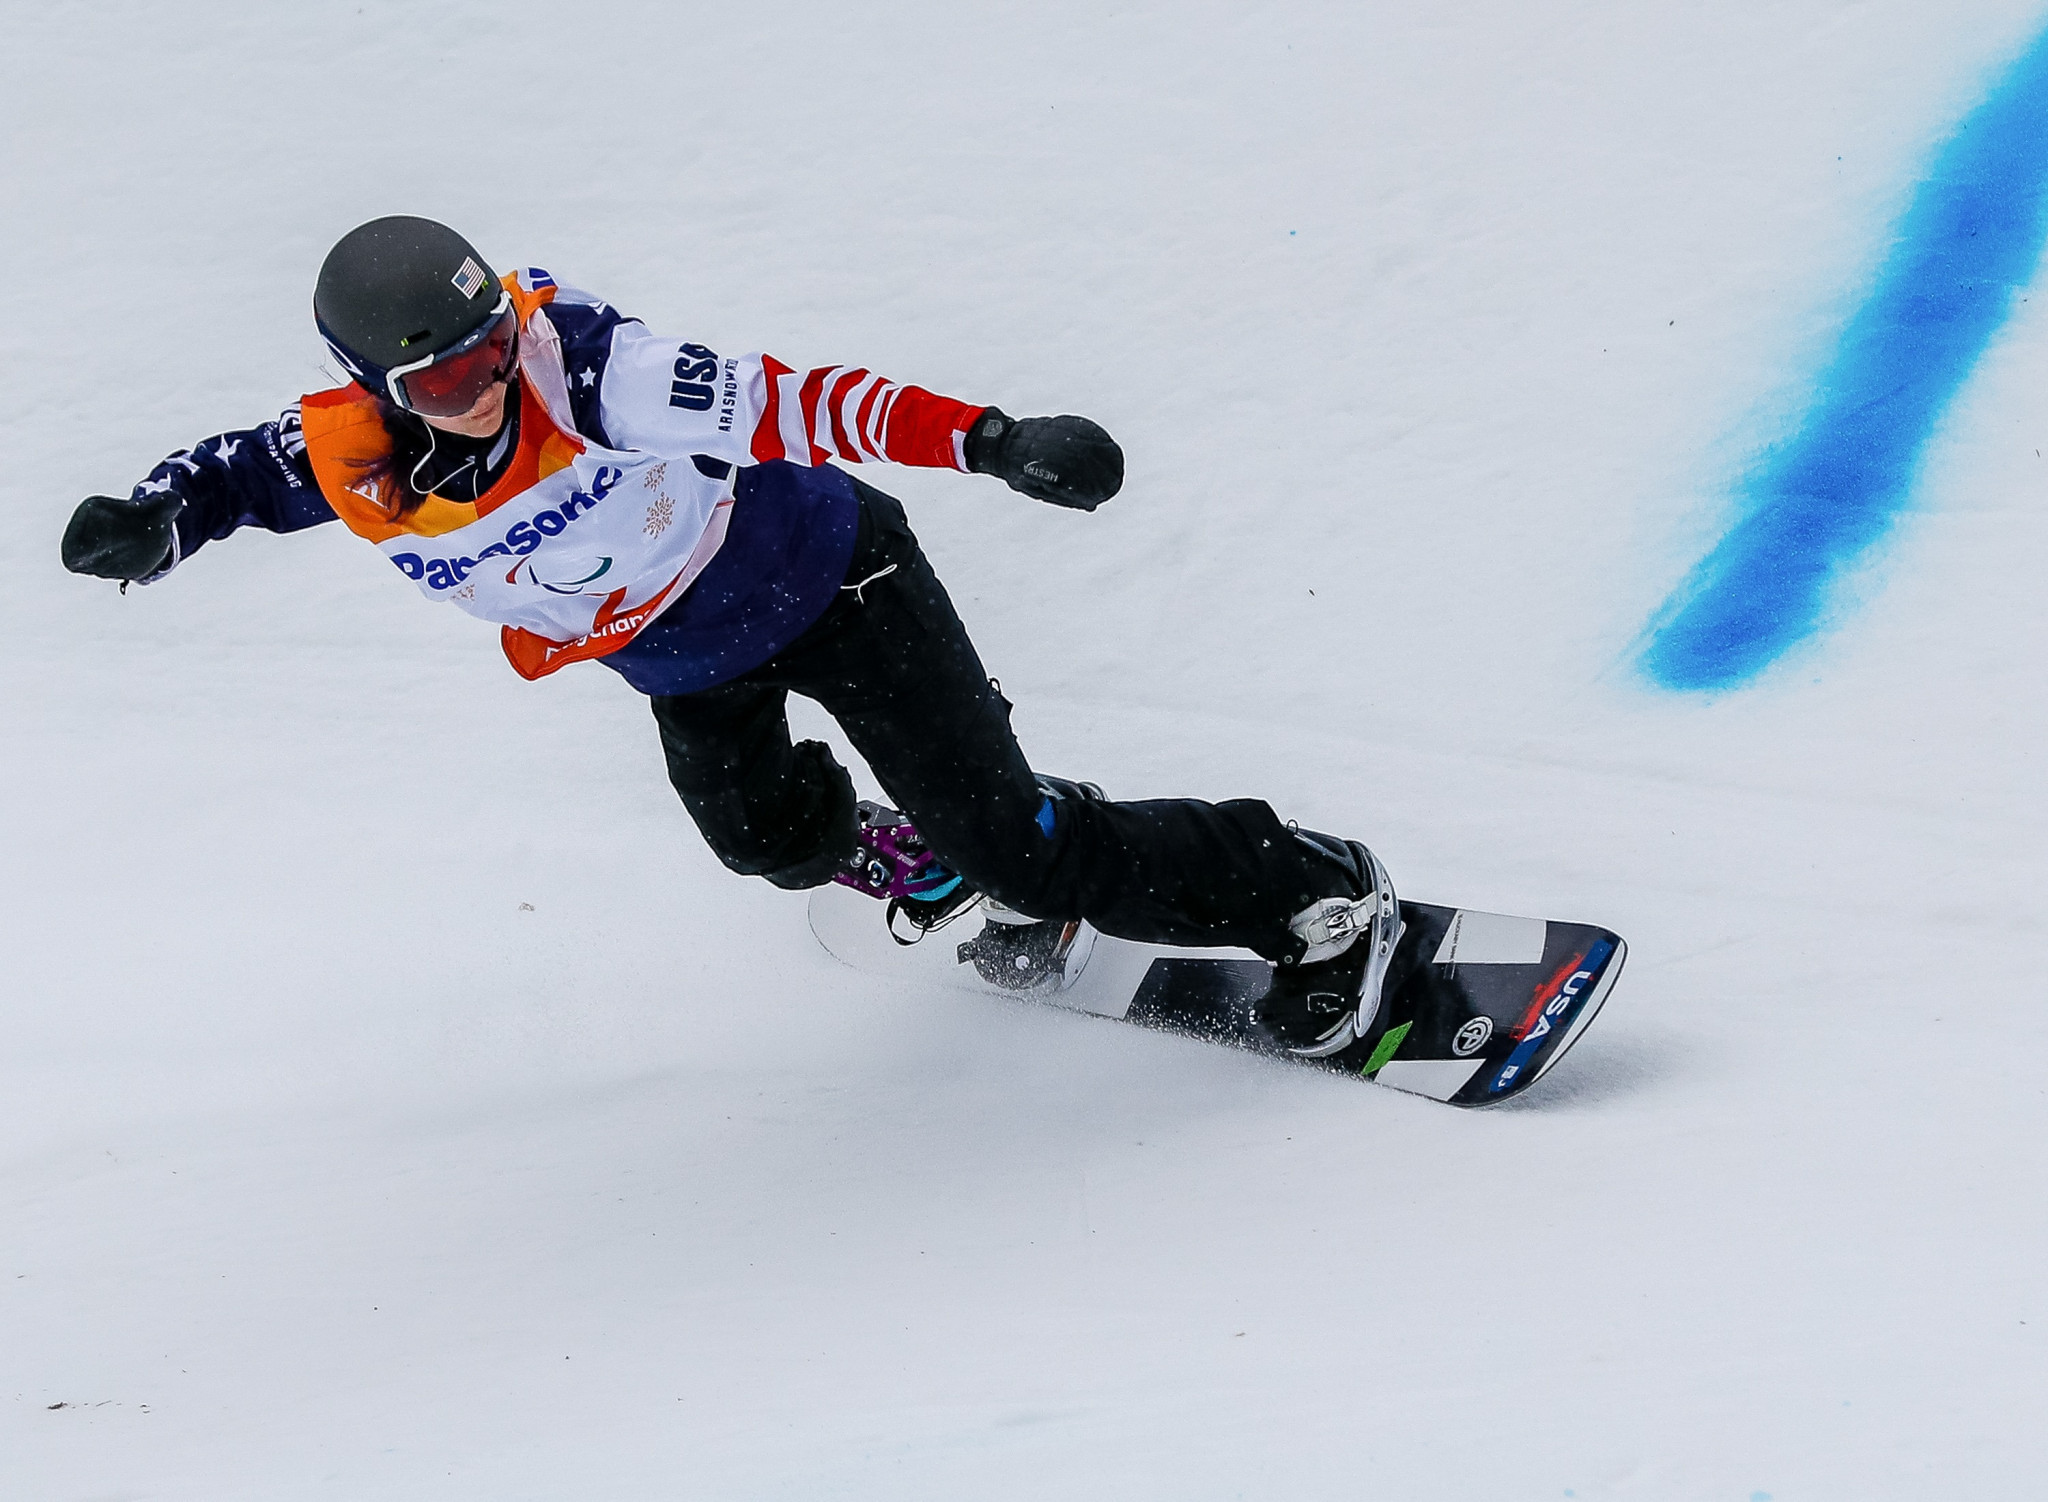 Huckaby and Mentel-Spee seal domination of snowboard events at Pyeongchang 2018